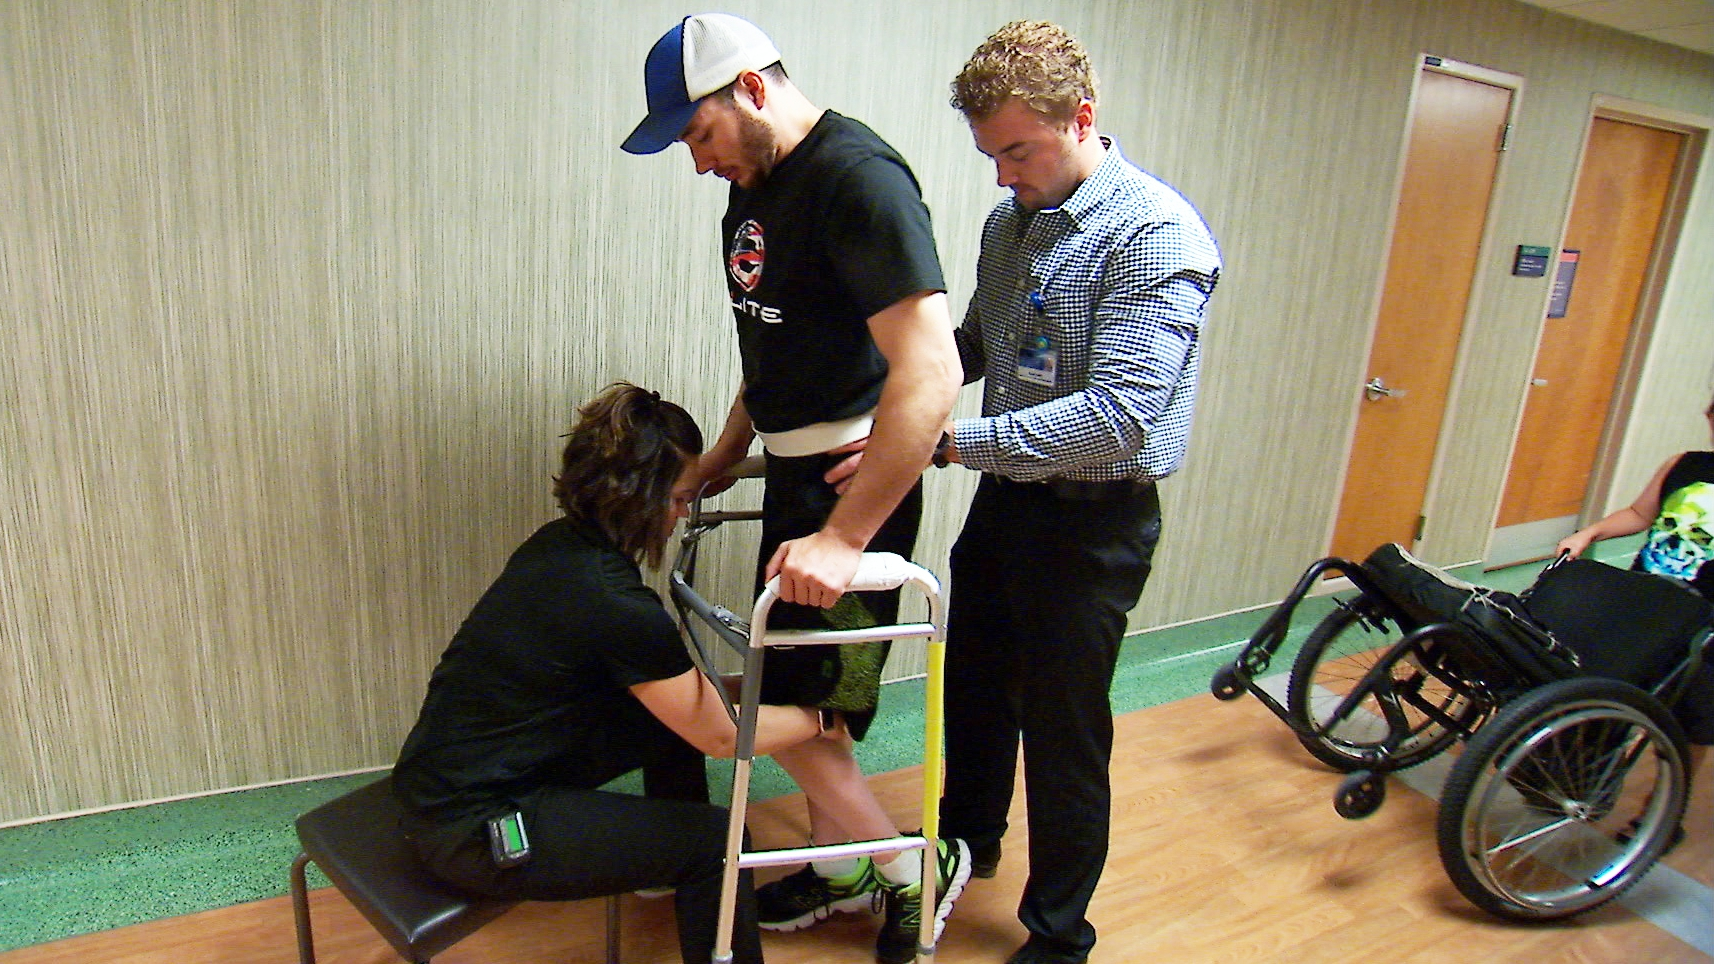 spinal cord stimulation patient Jered Chinnock walking with assistance